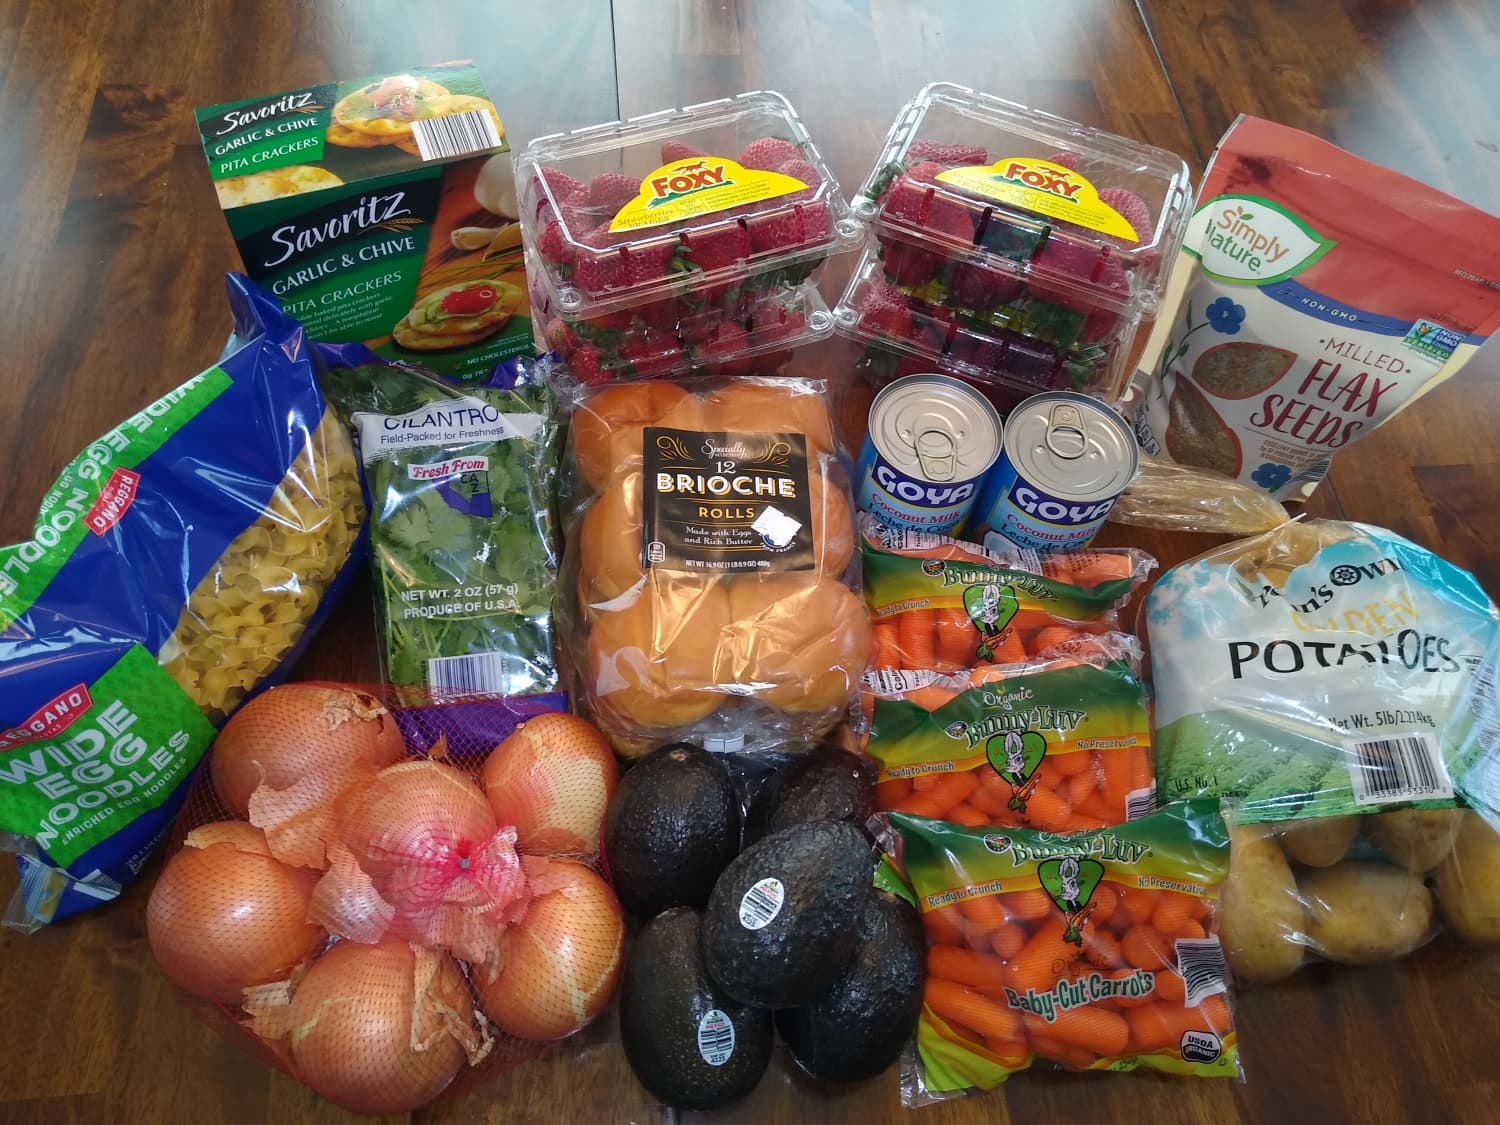 How a Vegetarian Family of 6 in Delaware Spends Less than $100 on a Week of Groceries